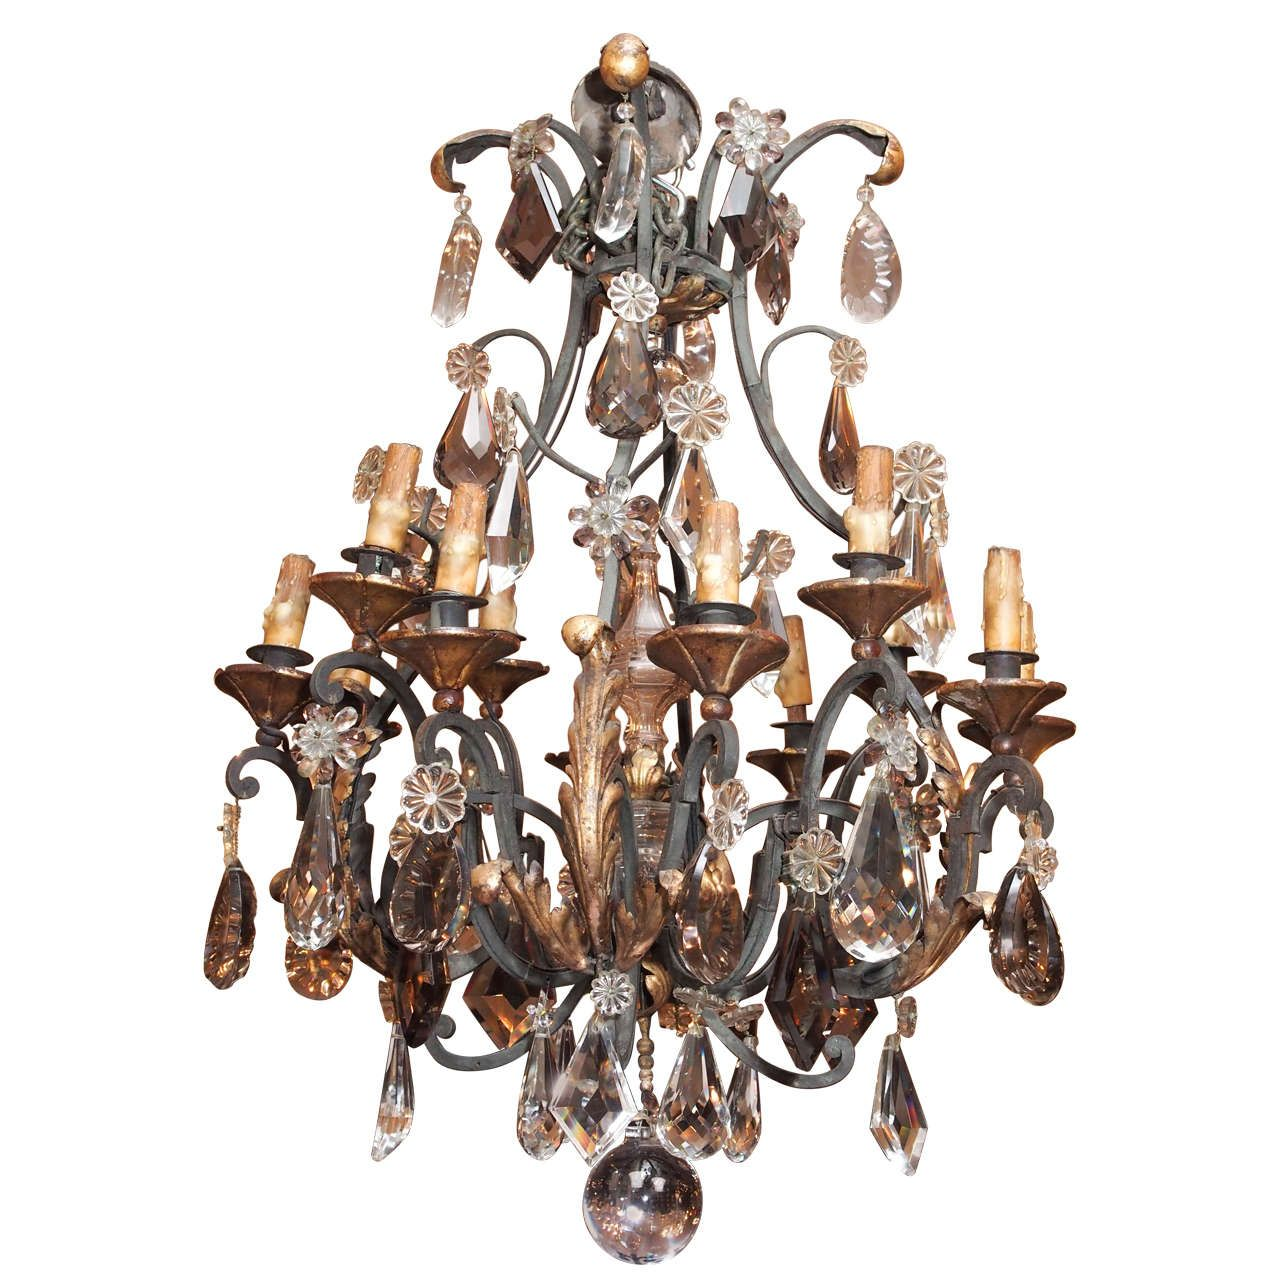 Antique French Wrought Iron Heavy Baccarat Crystal Chandelier Circa 1840 1860